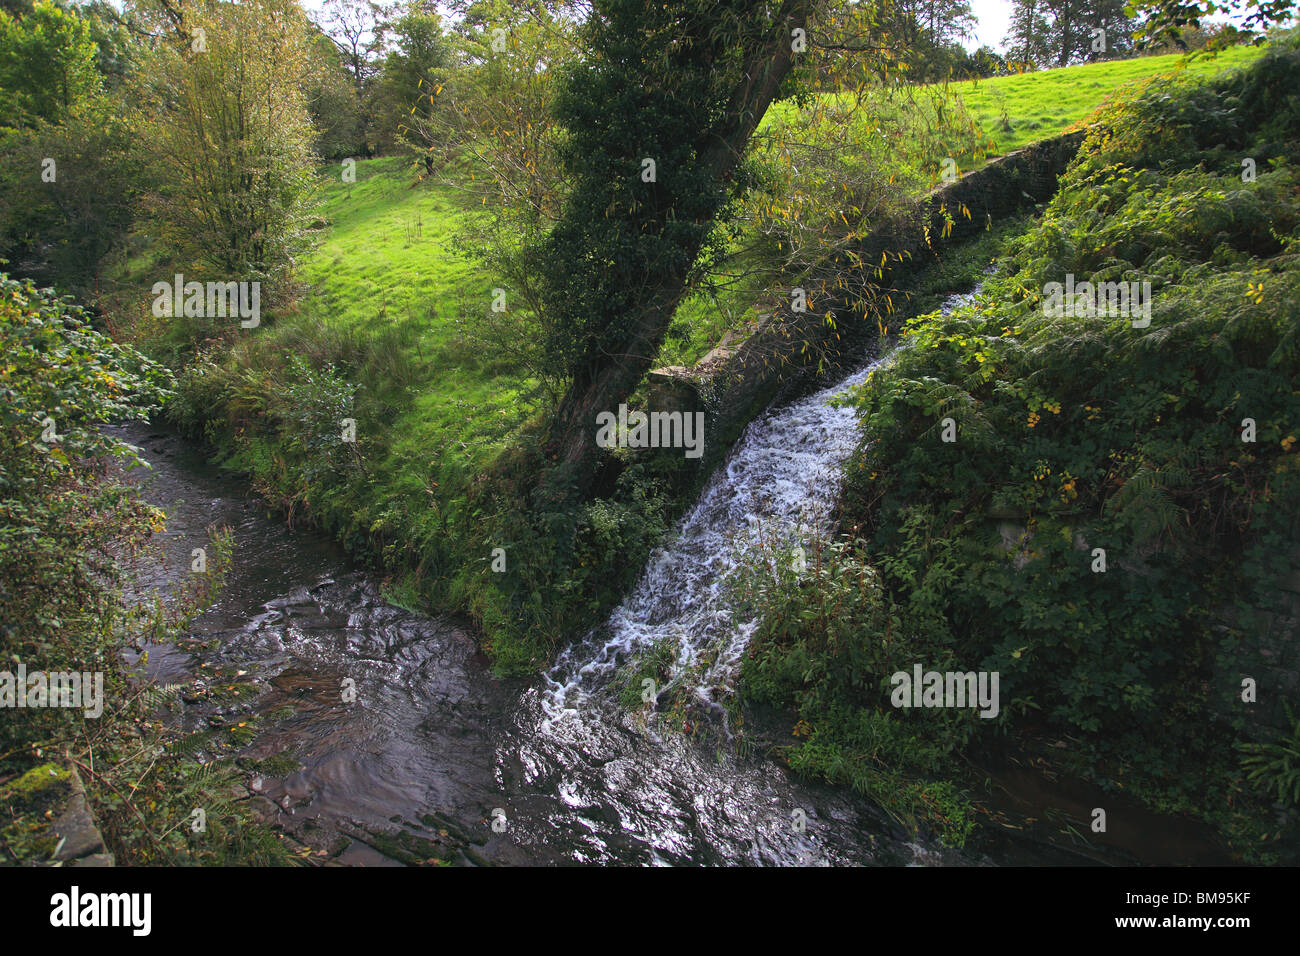 The runoff of water from the Macclesfield Canal into the River Bollin at Sutton, Macclesfield - Stock Image